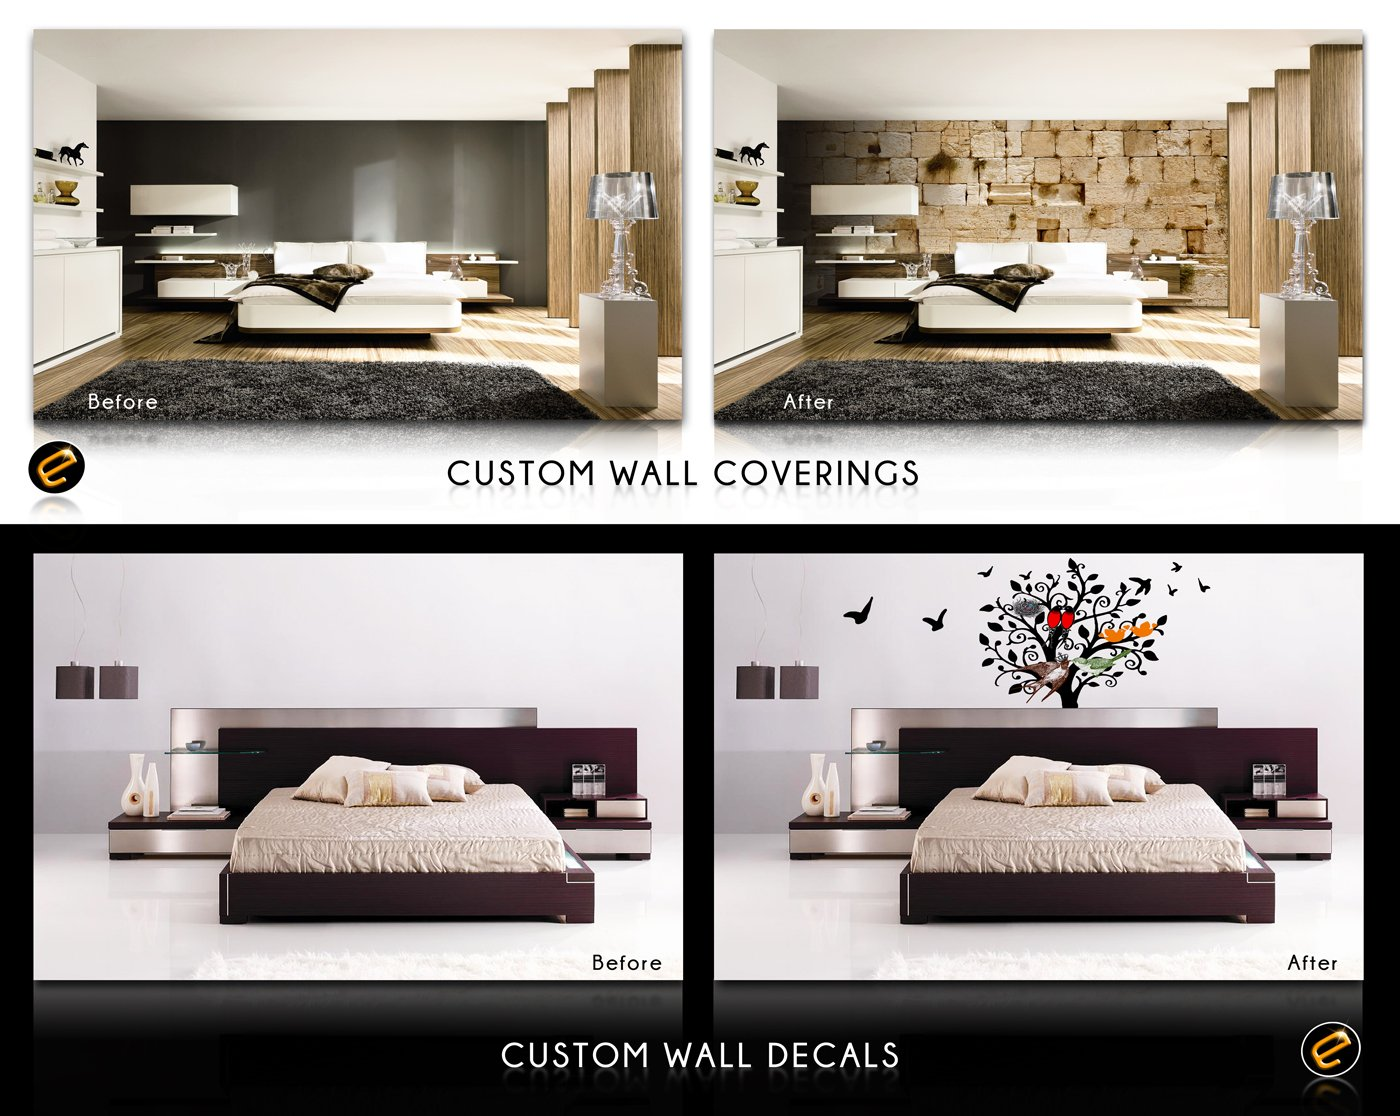 Easy Signs Introduces A Temporary Peel Stick Adhesives And Non Adhesive Permanent Wallpapers Using The Latest Wallpaper Printing Technology